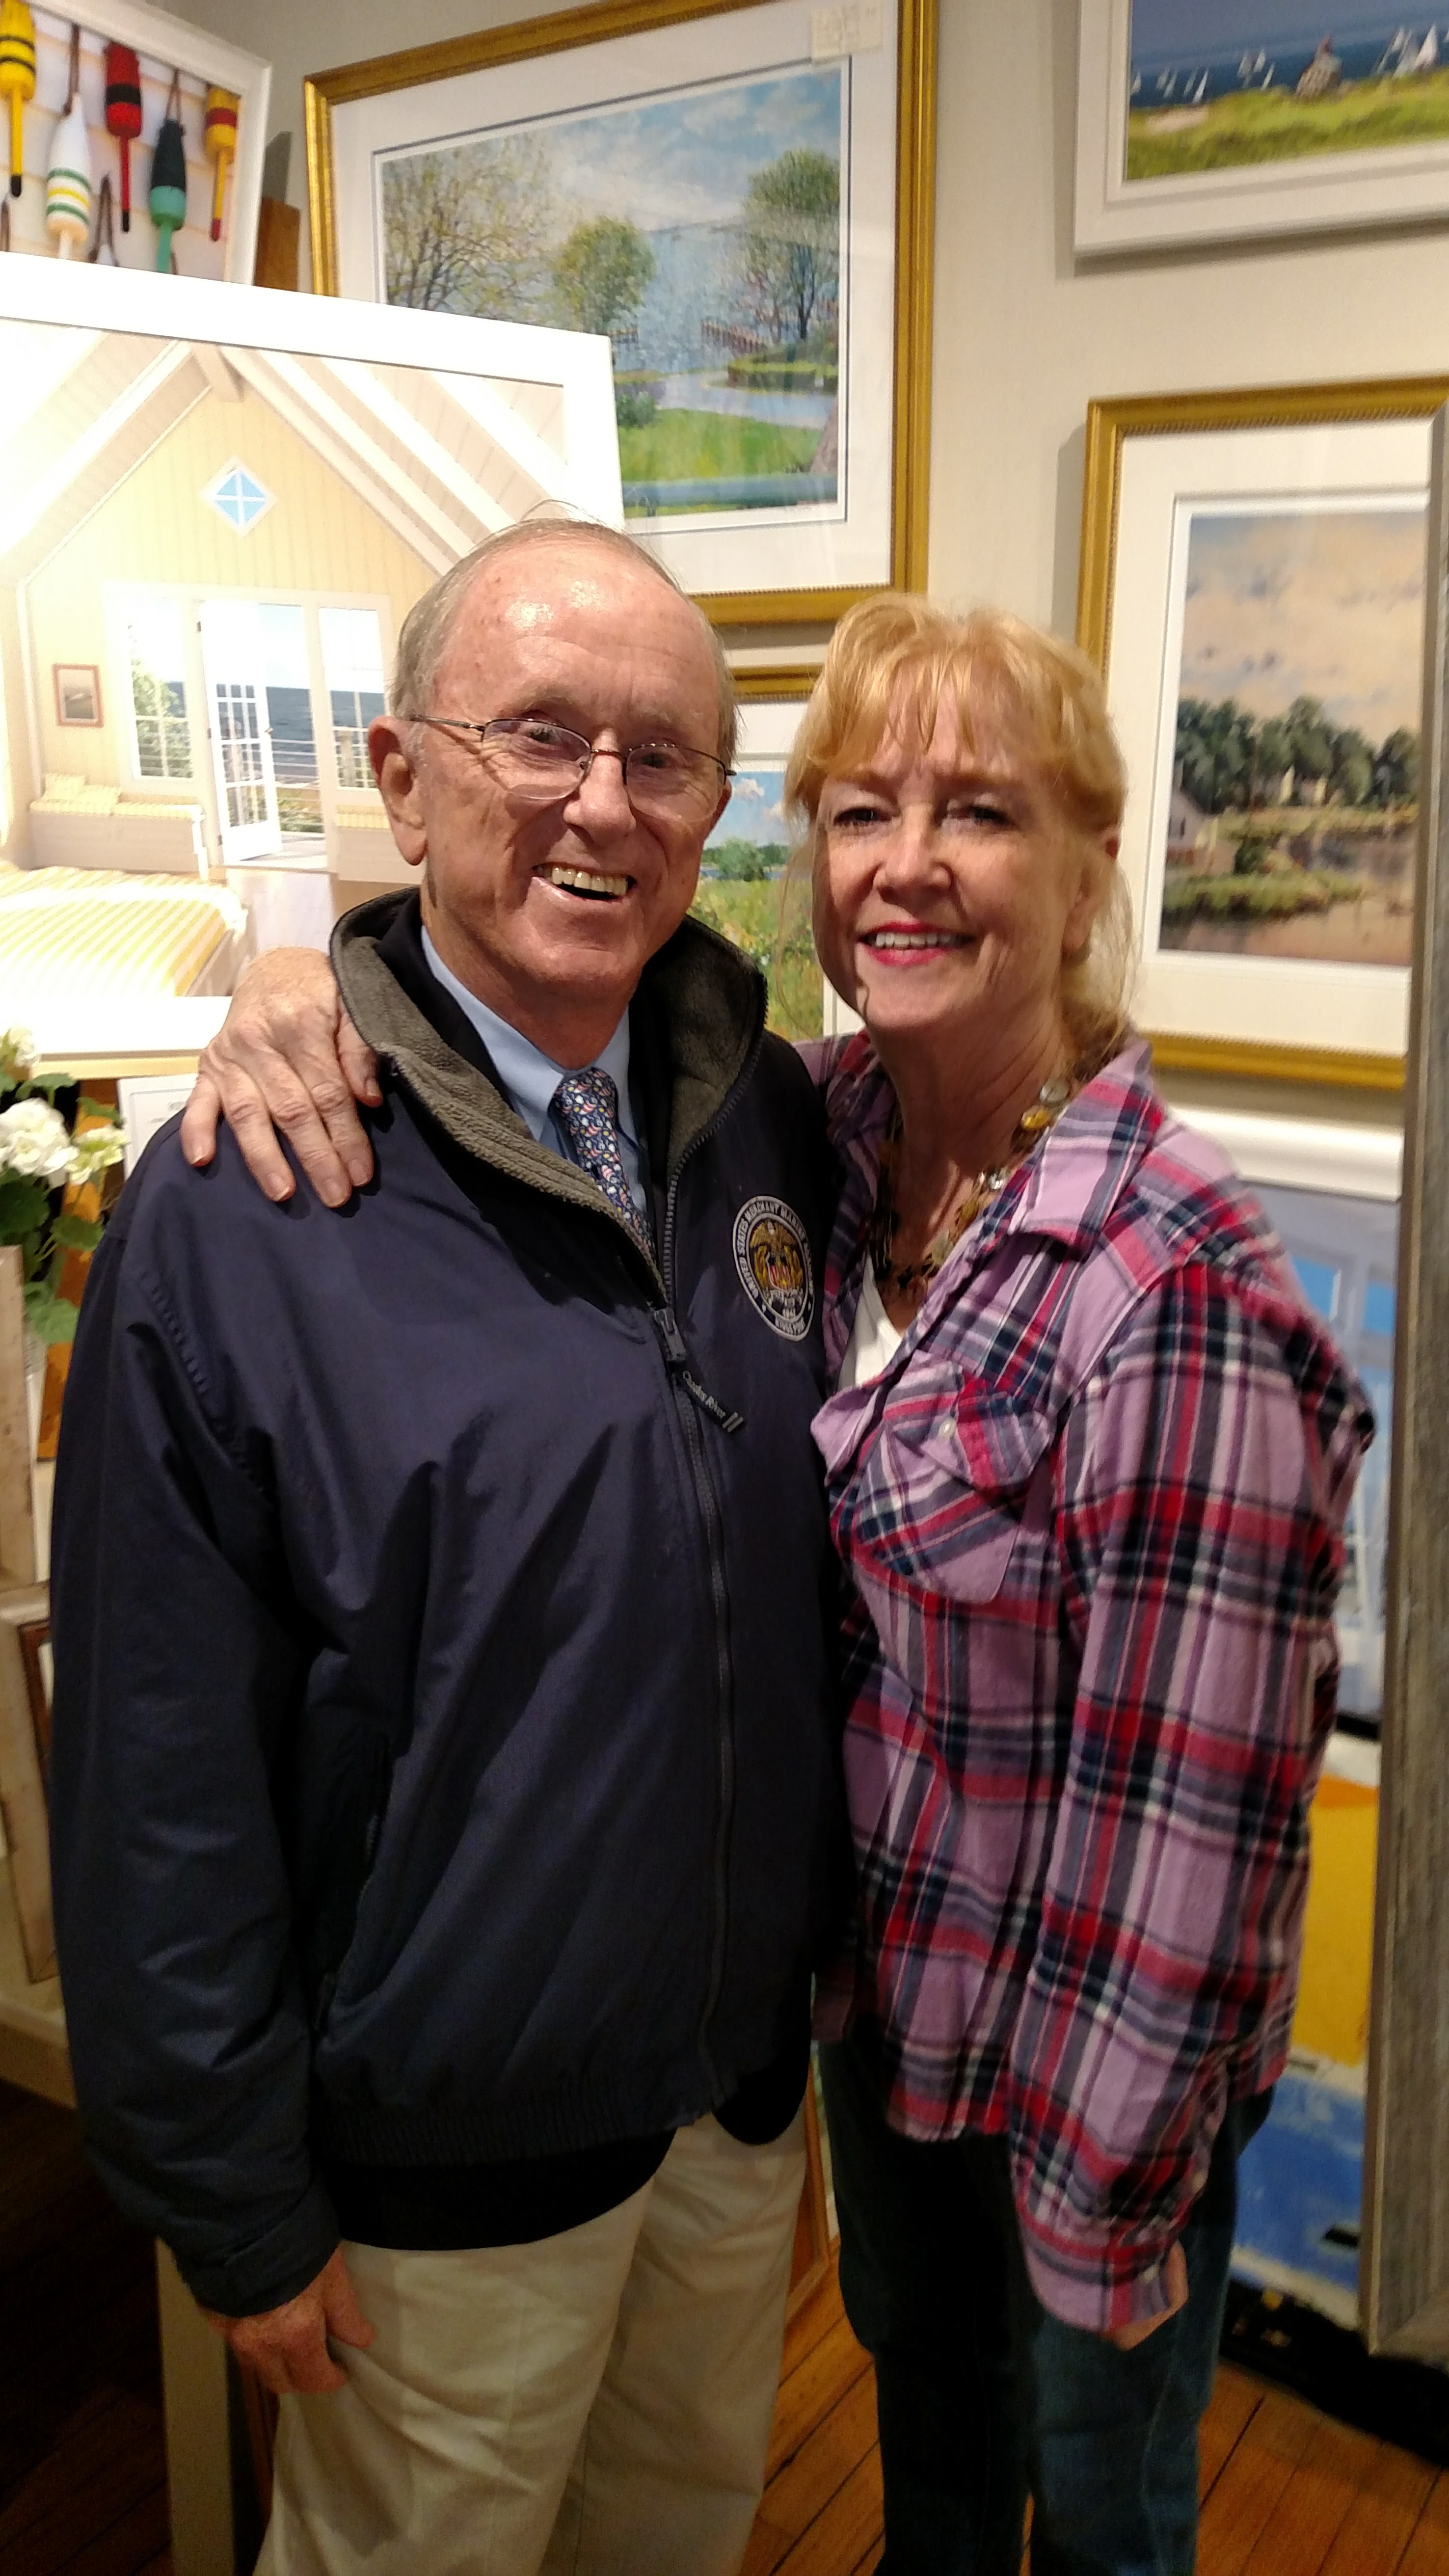 Snagging a picture with maritime artist John Stobart